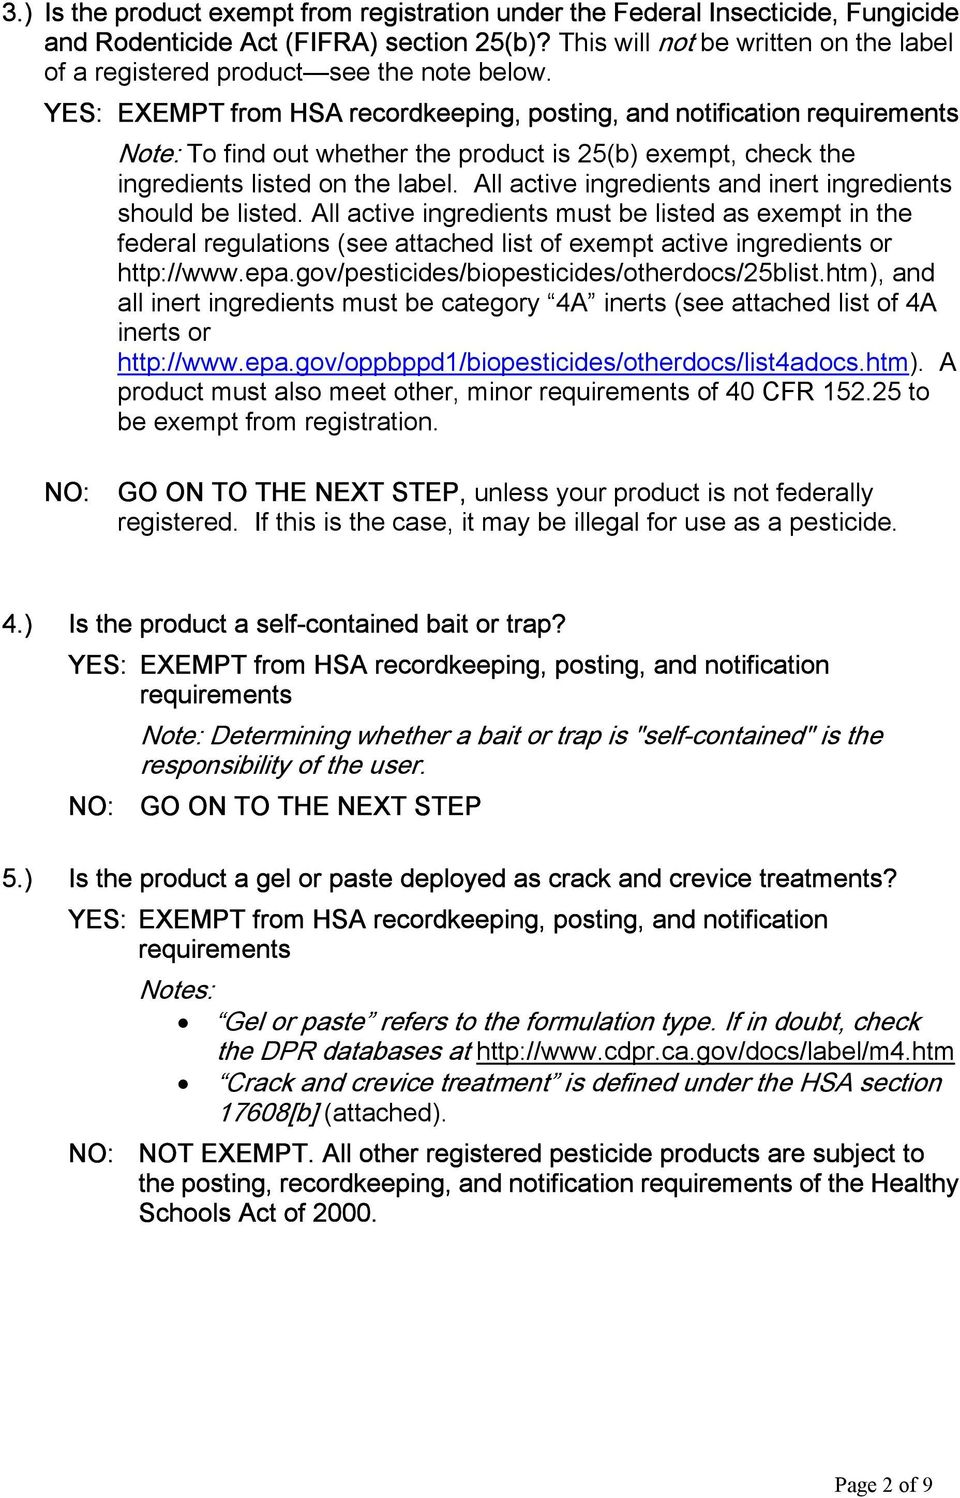 YES: EXEMPT from HSA recordkeeping, posting, and notification requirements Note: To find out whether the product is 25(b) exempt, check the ingredients listed on the label.